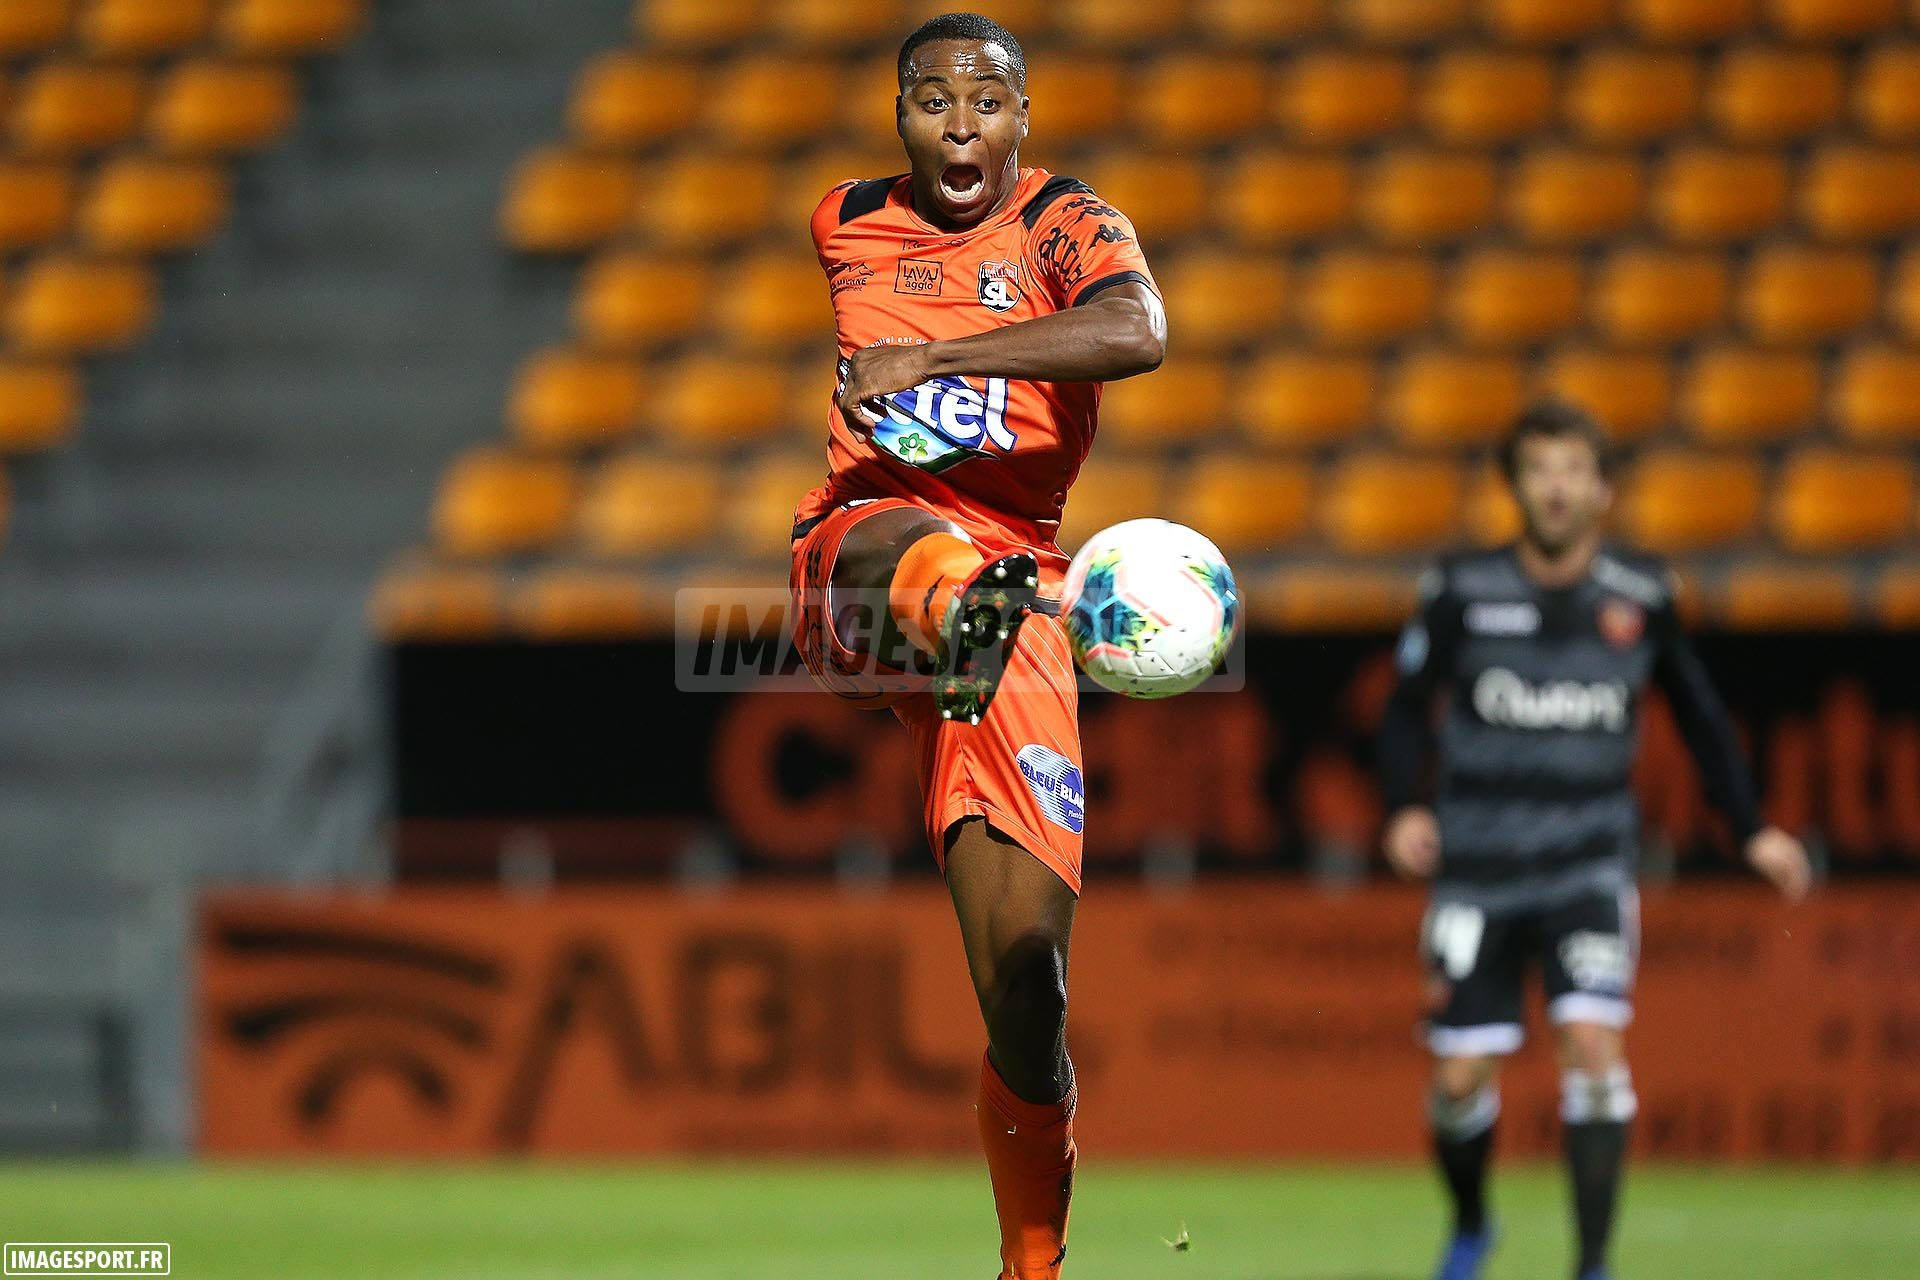 national-laval-ajaccio-football_15